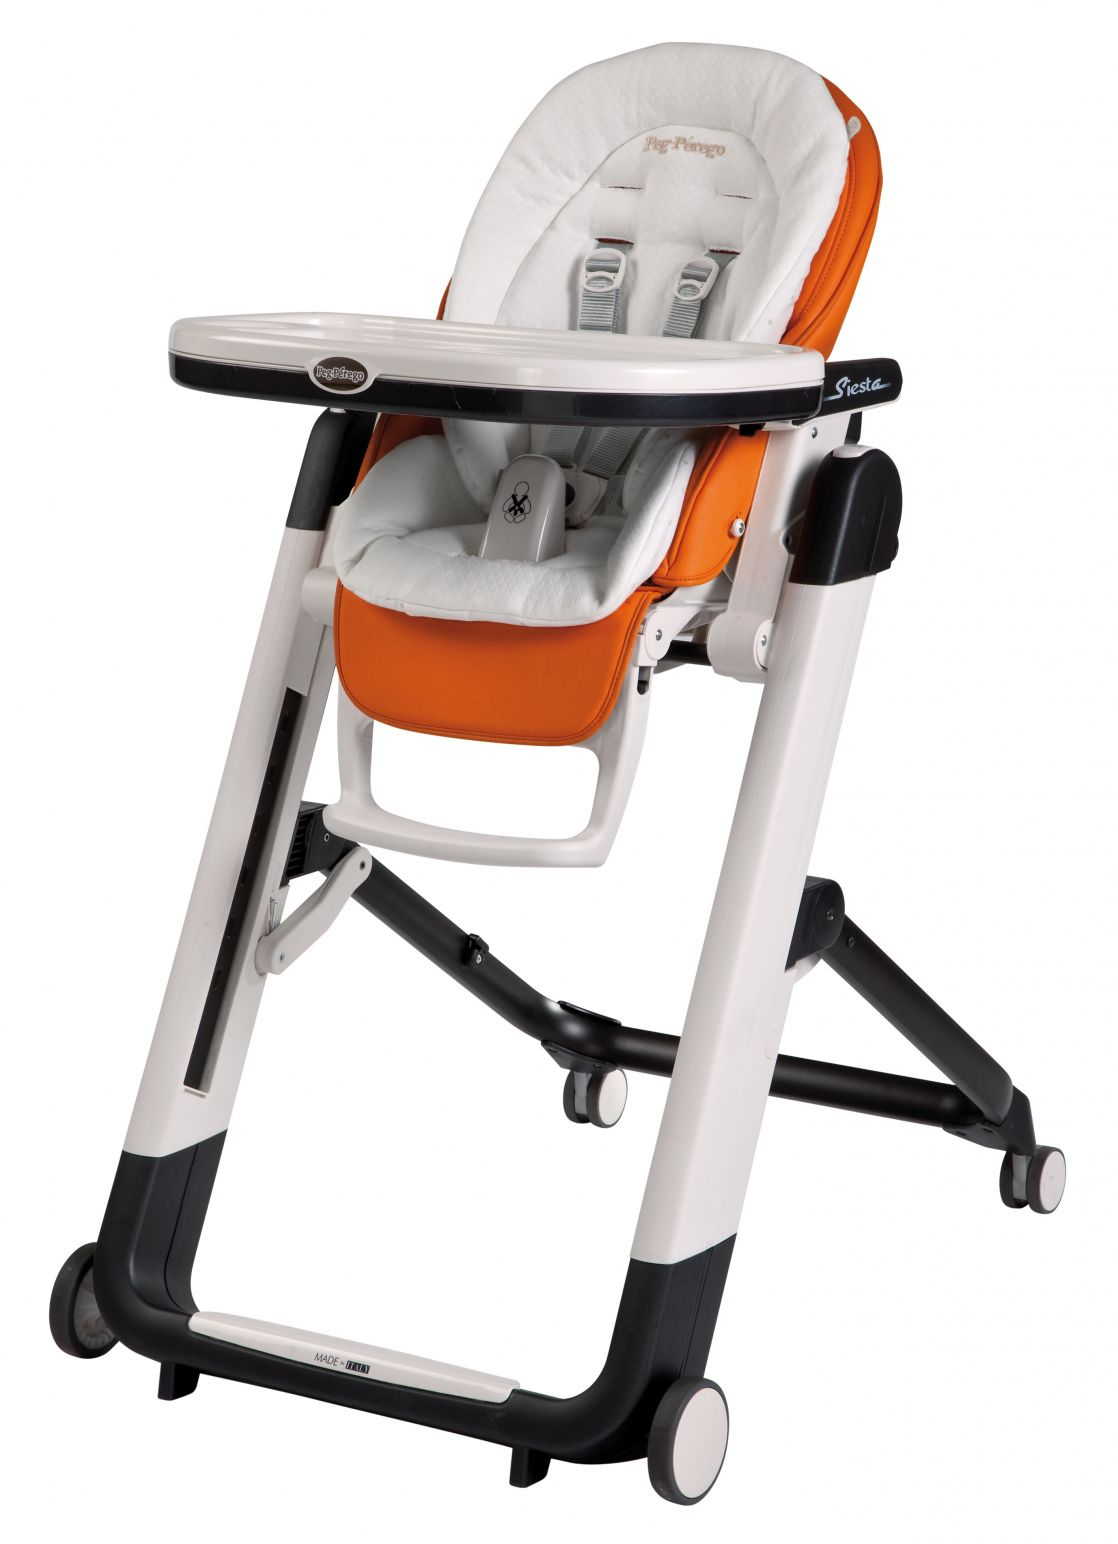 Oxo Tot High Chair Recall How To Make A Queening 100 Peg Perego Kitchen Design Ideas Images Check More At Http